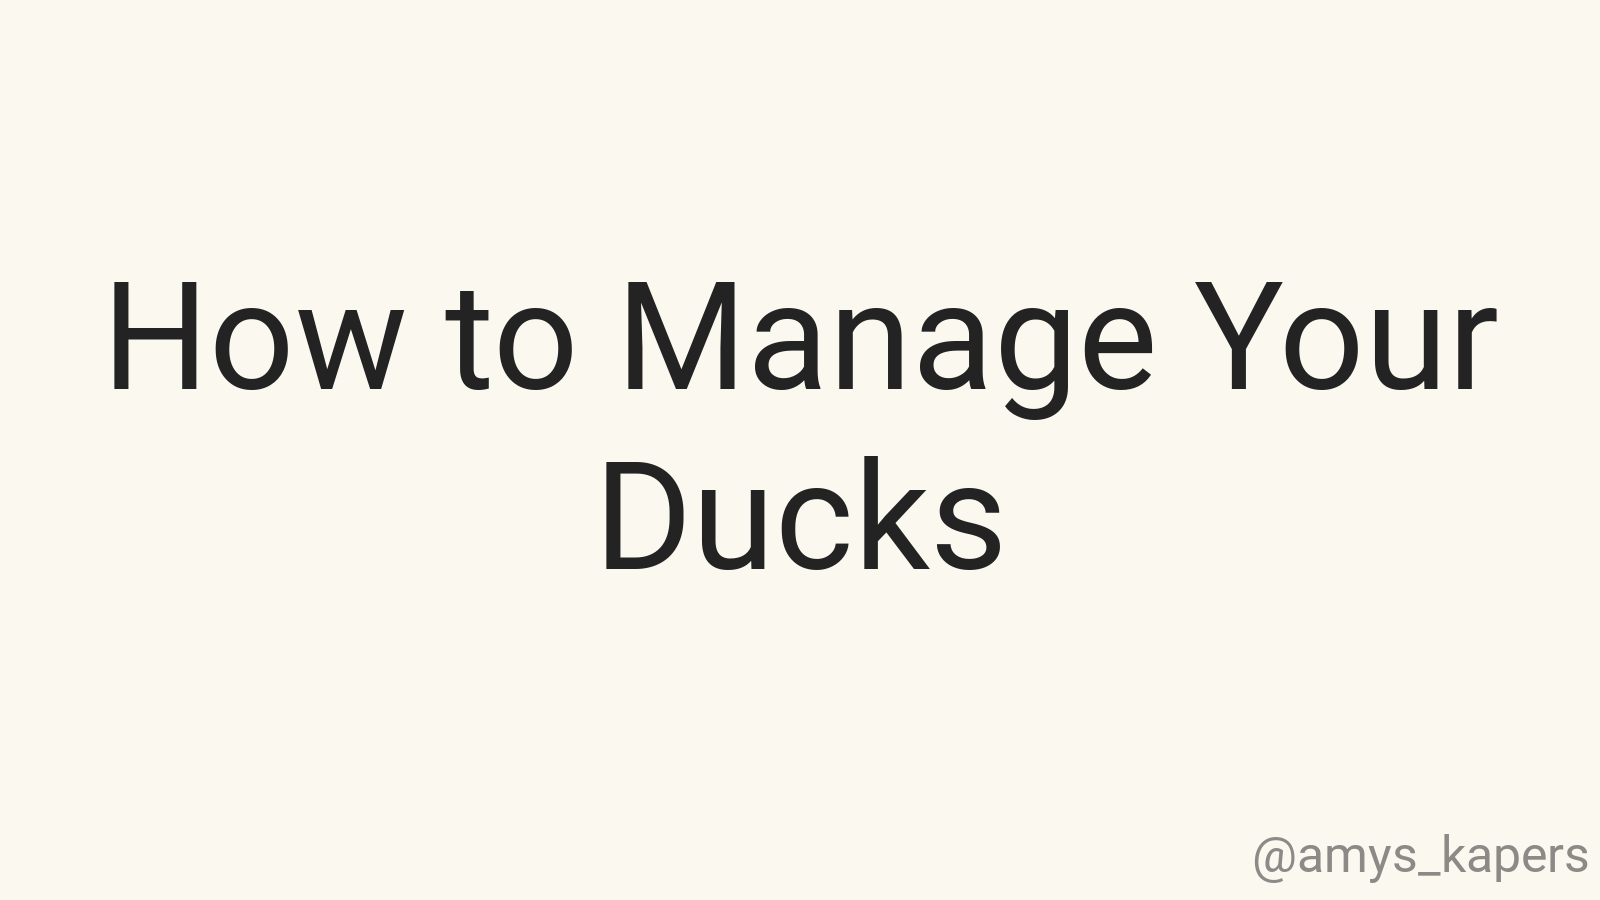 How to Manage Your Ducks